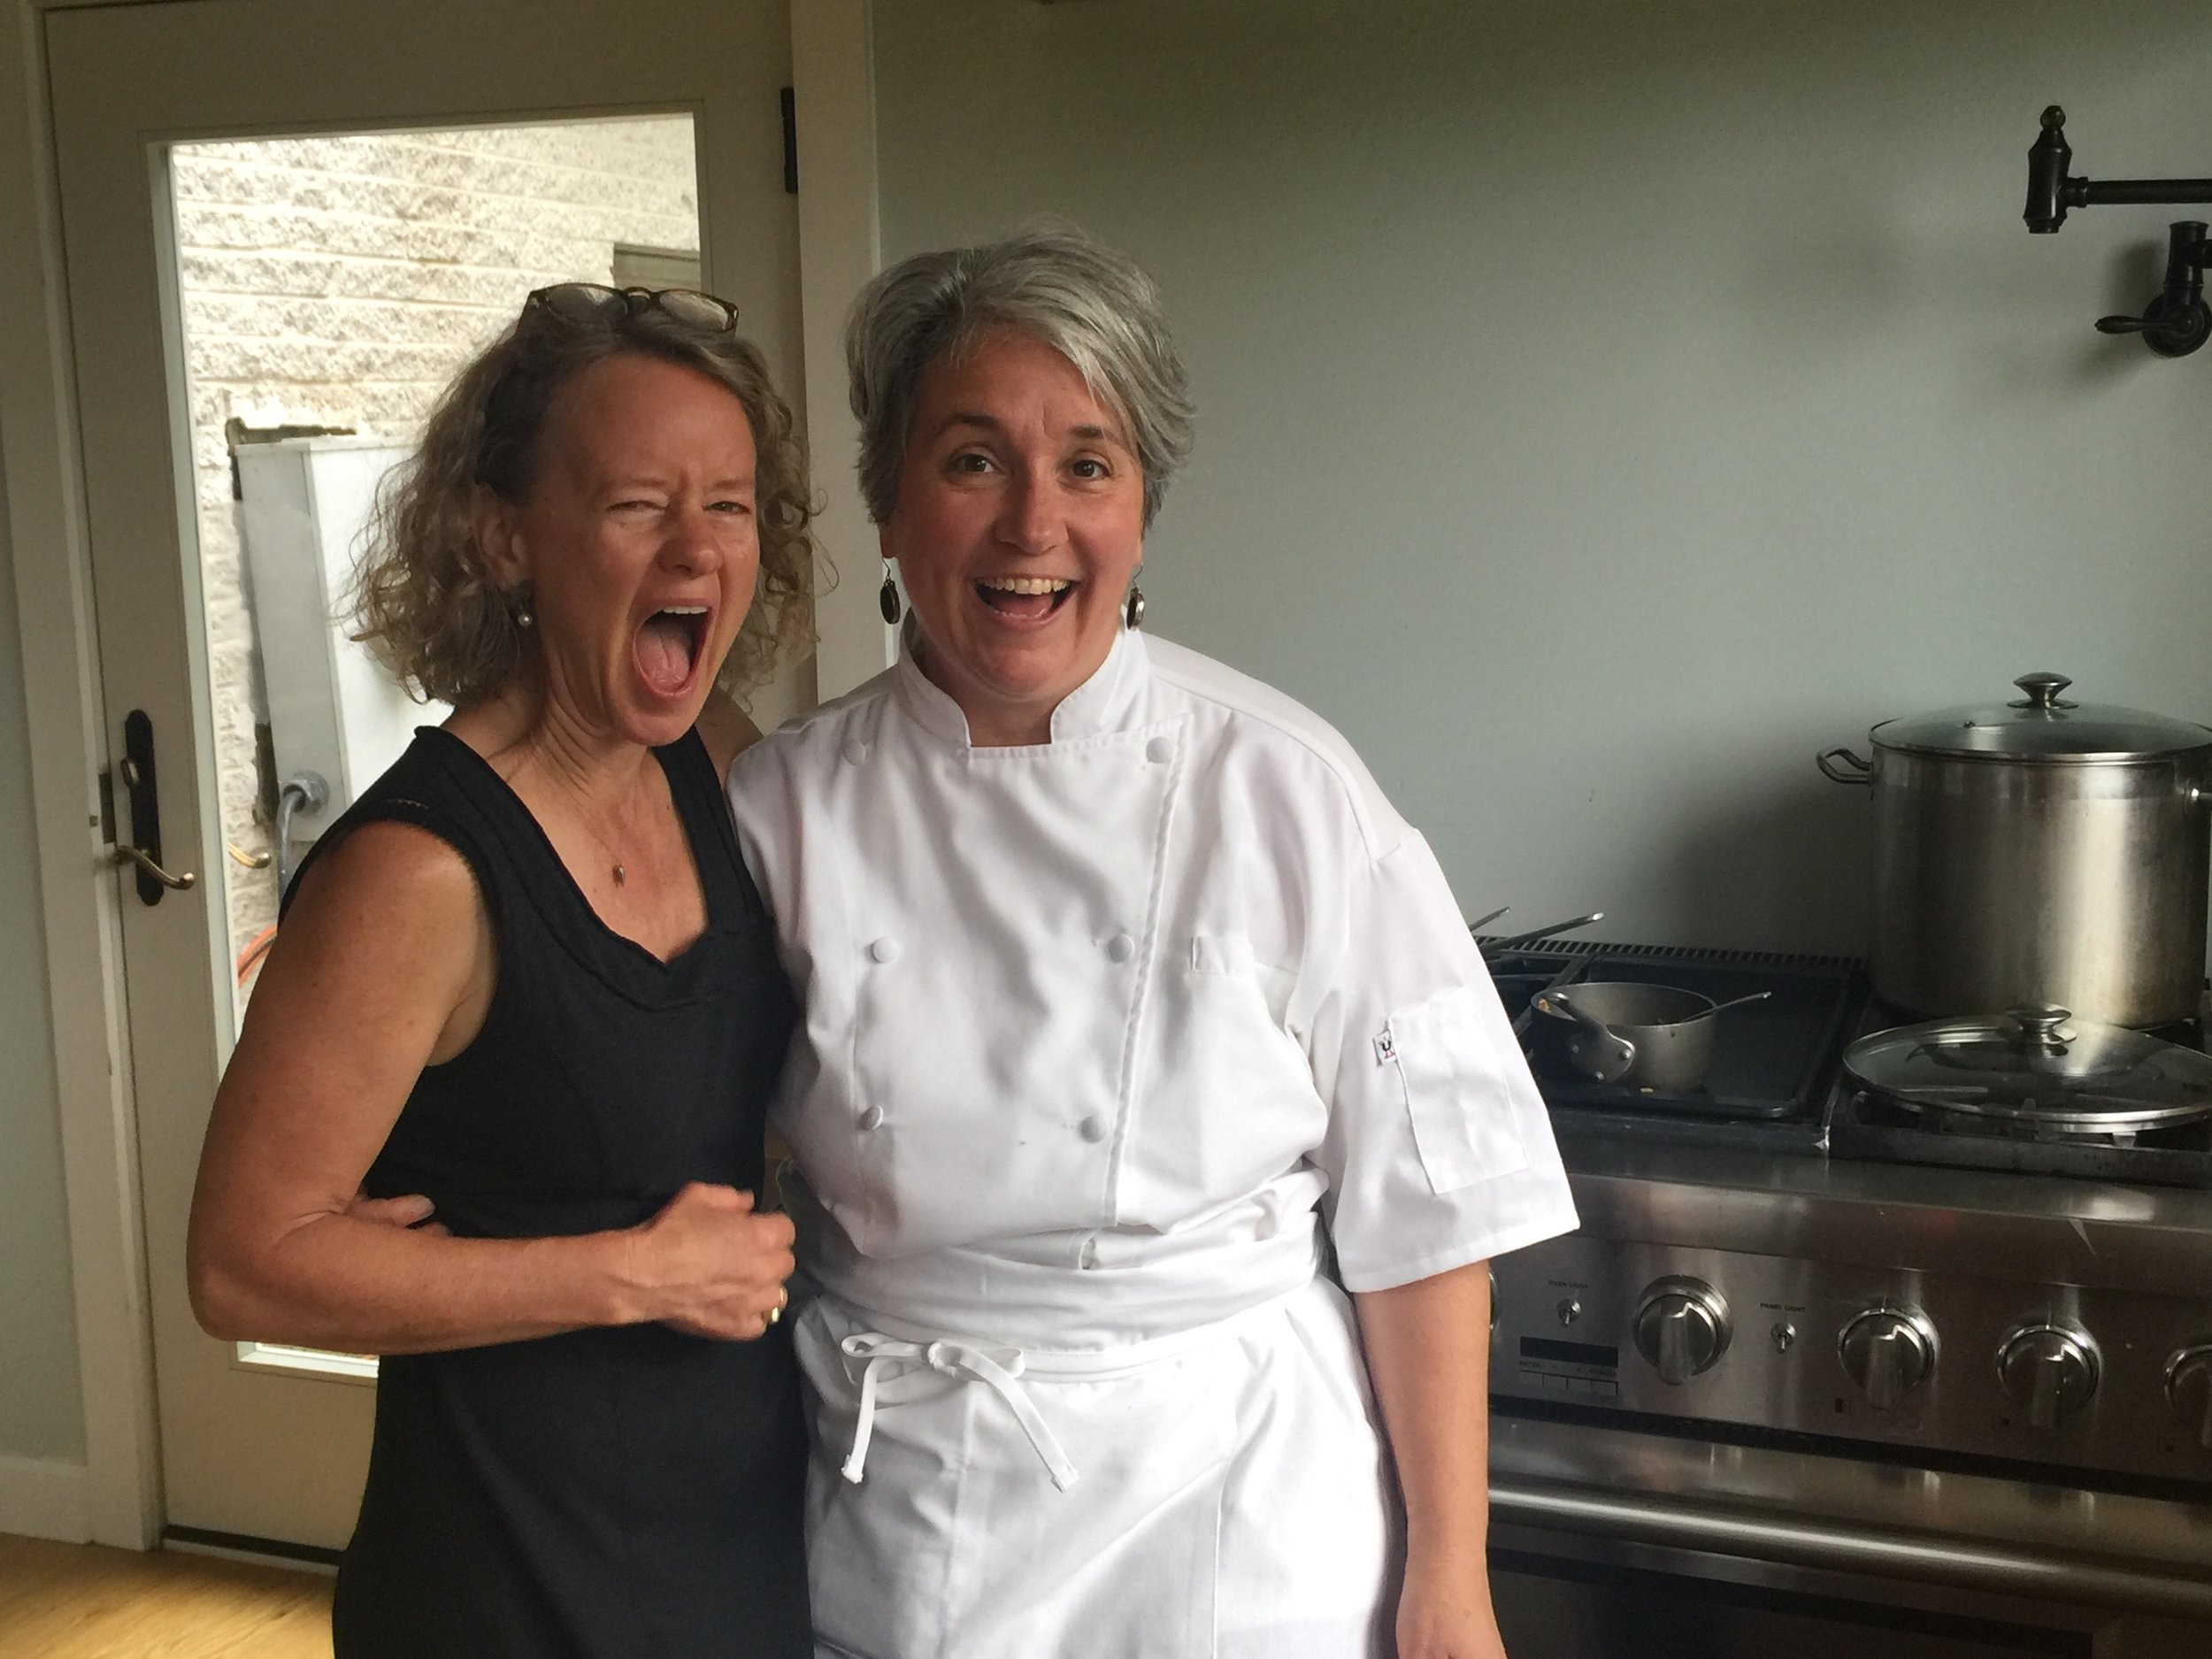 Me with Monica Corrado, assisting for her local certification program for nutritional cooks